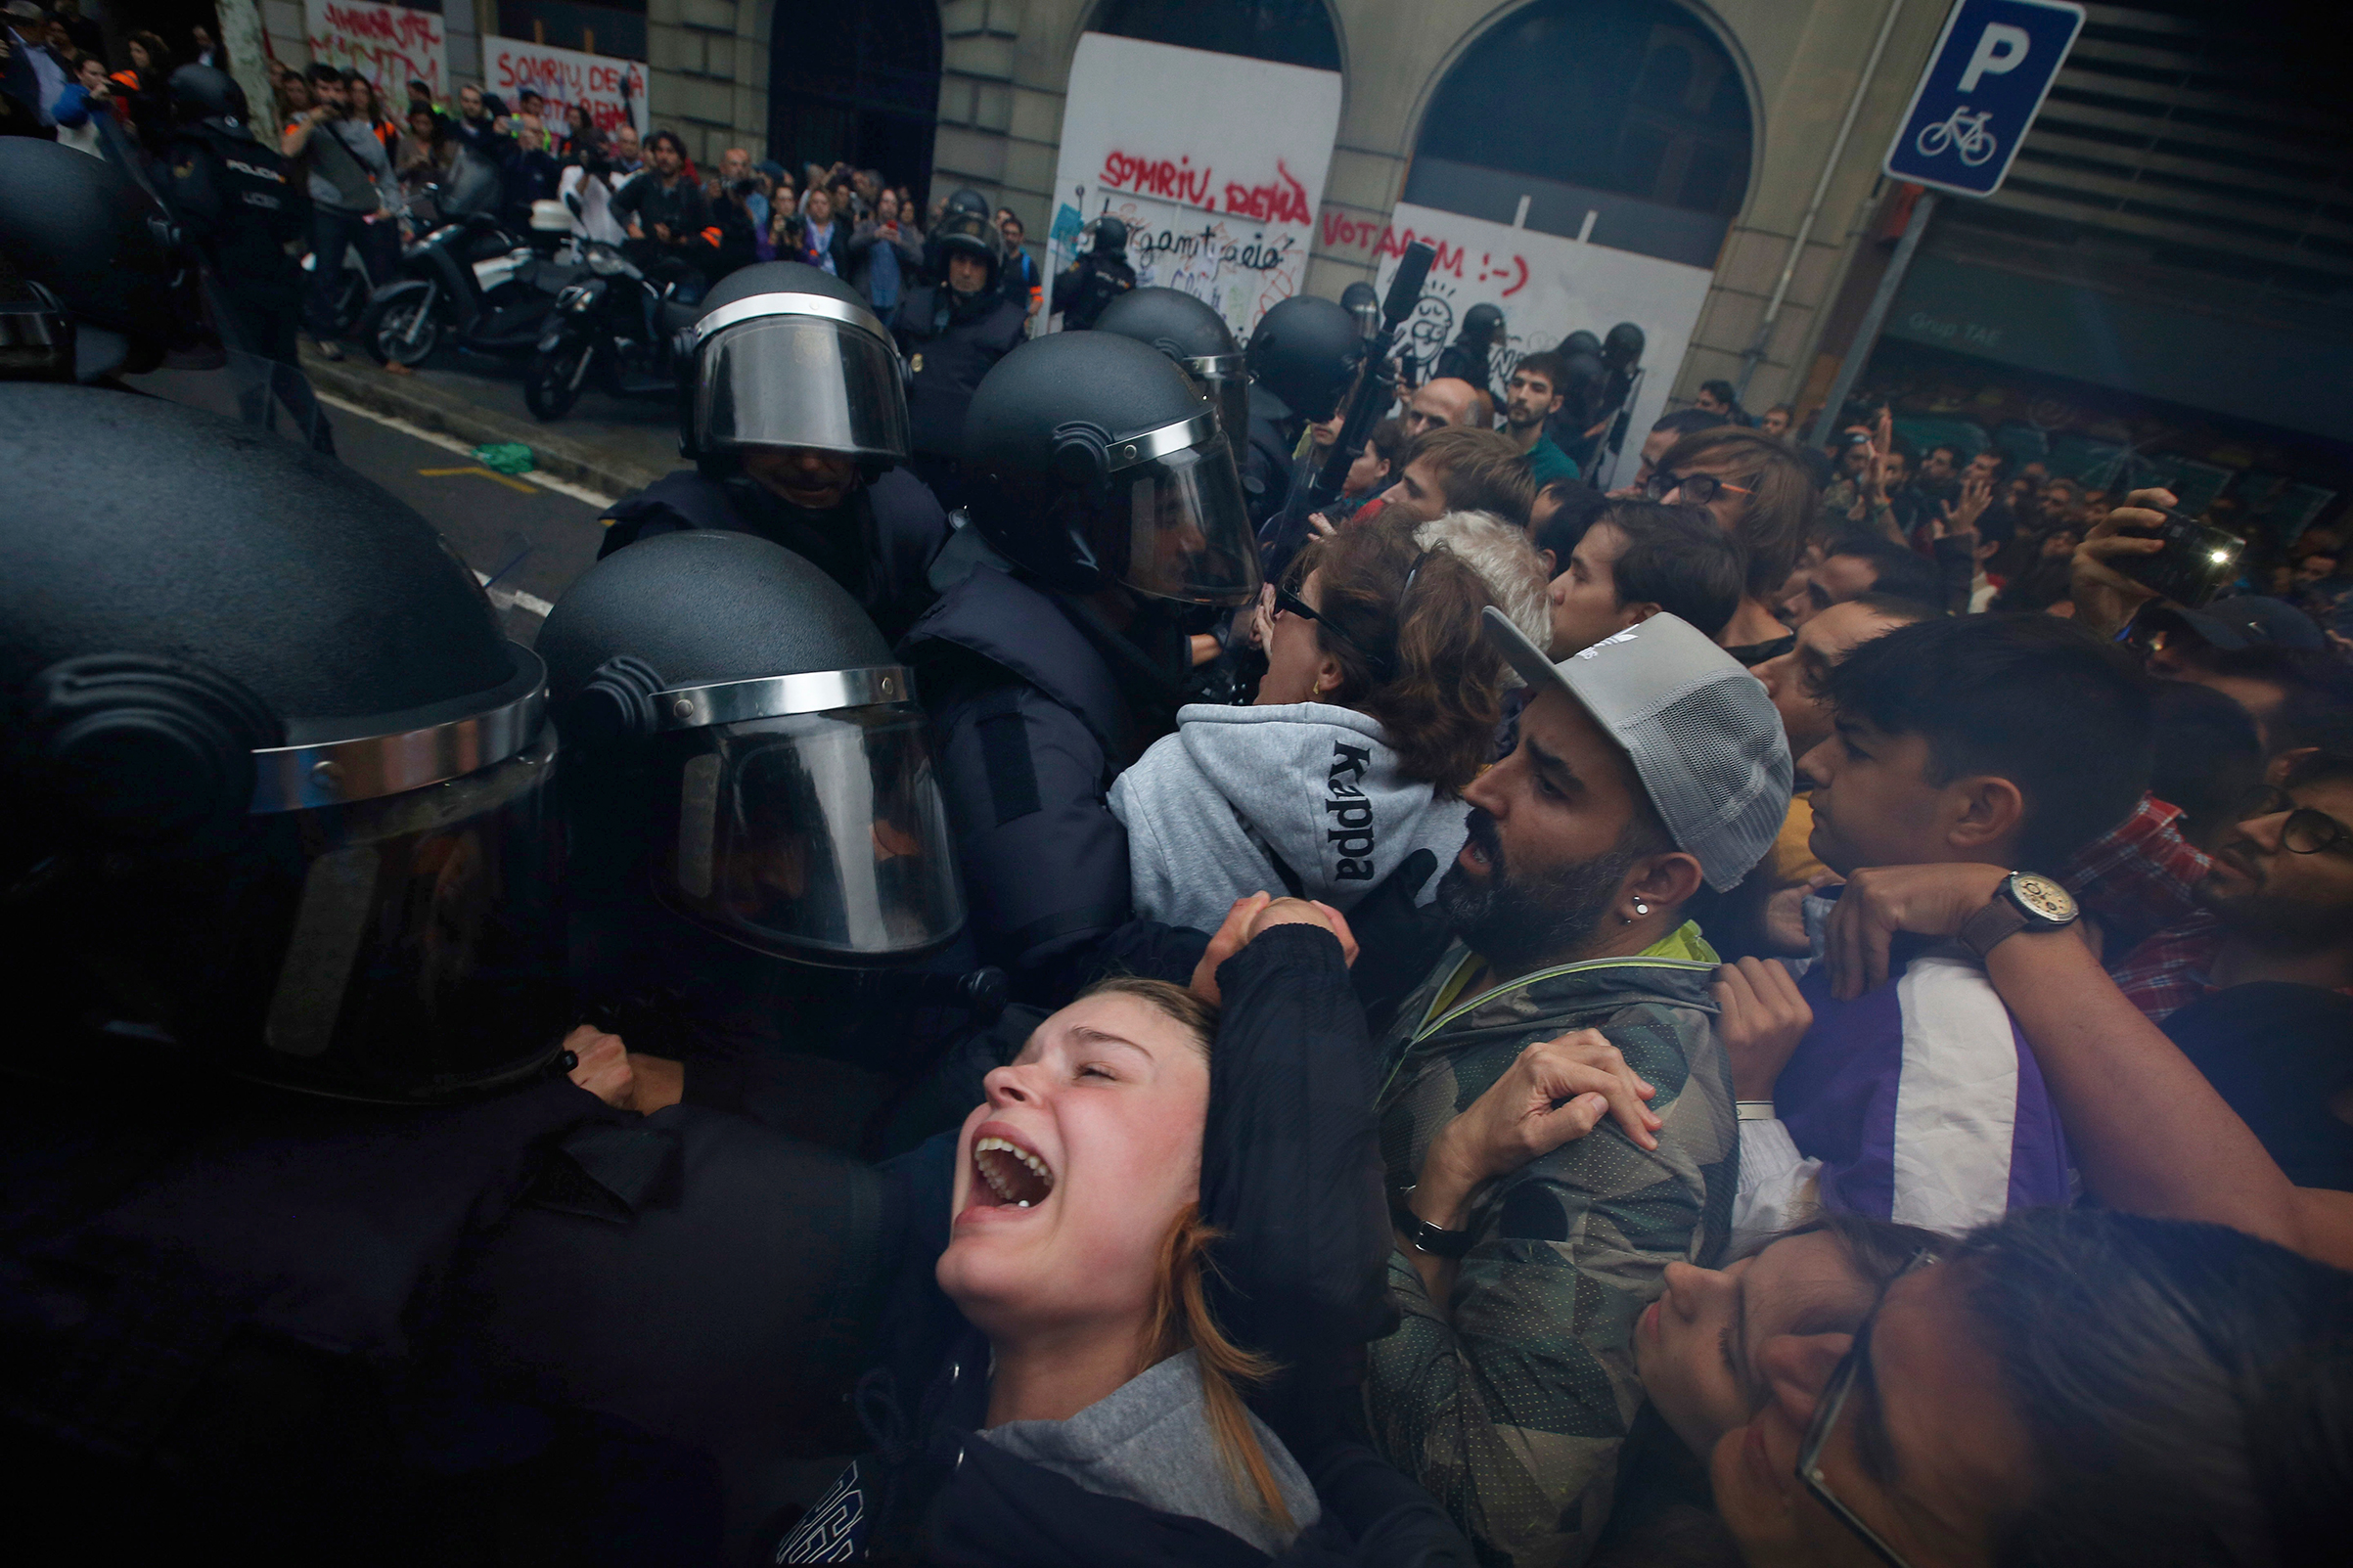 Spanish police push pro-referendum supporters outside a school assigned as a polling station in Barcelona onOct.1